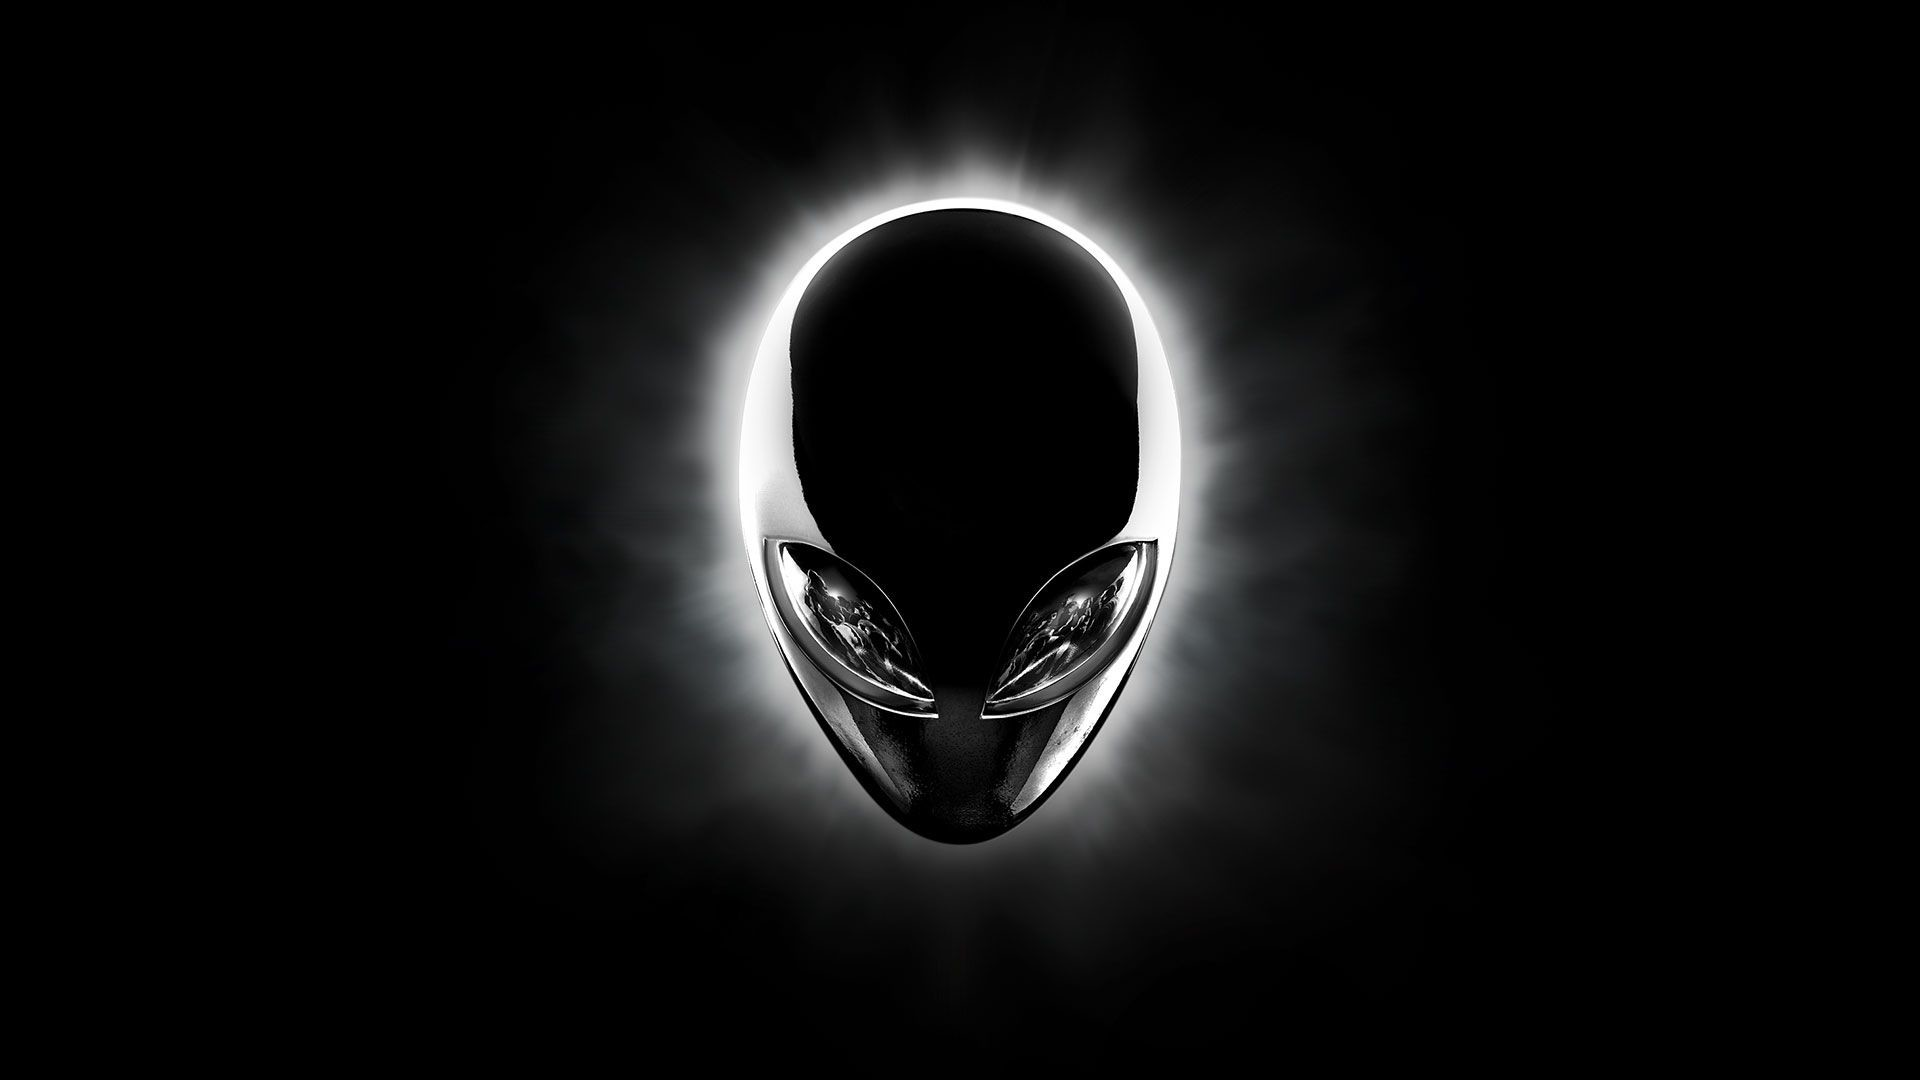 Res: 1920x1080, Alienware wallpapers | NotebookReview